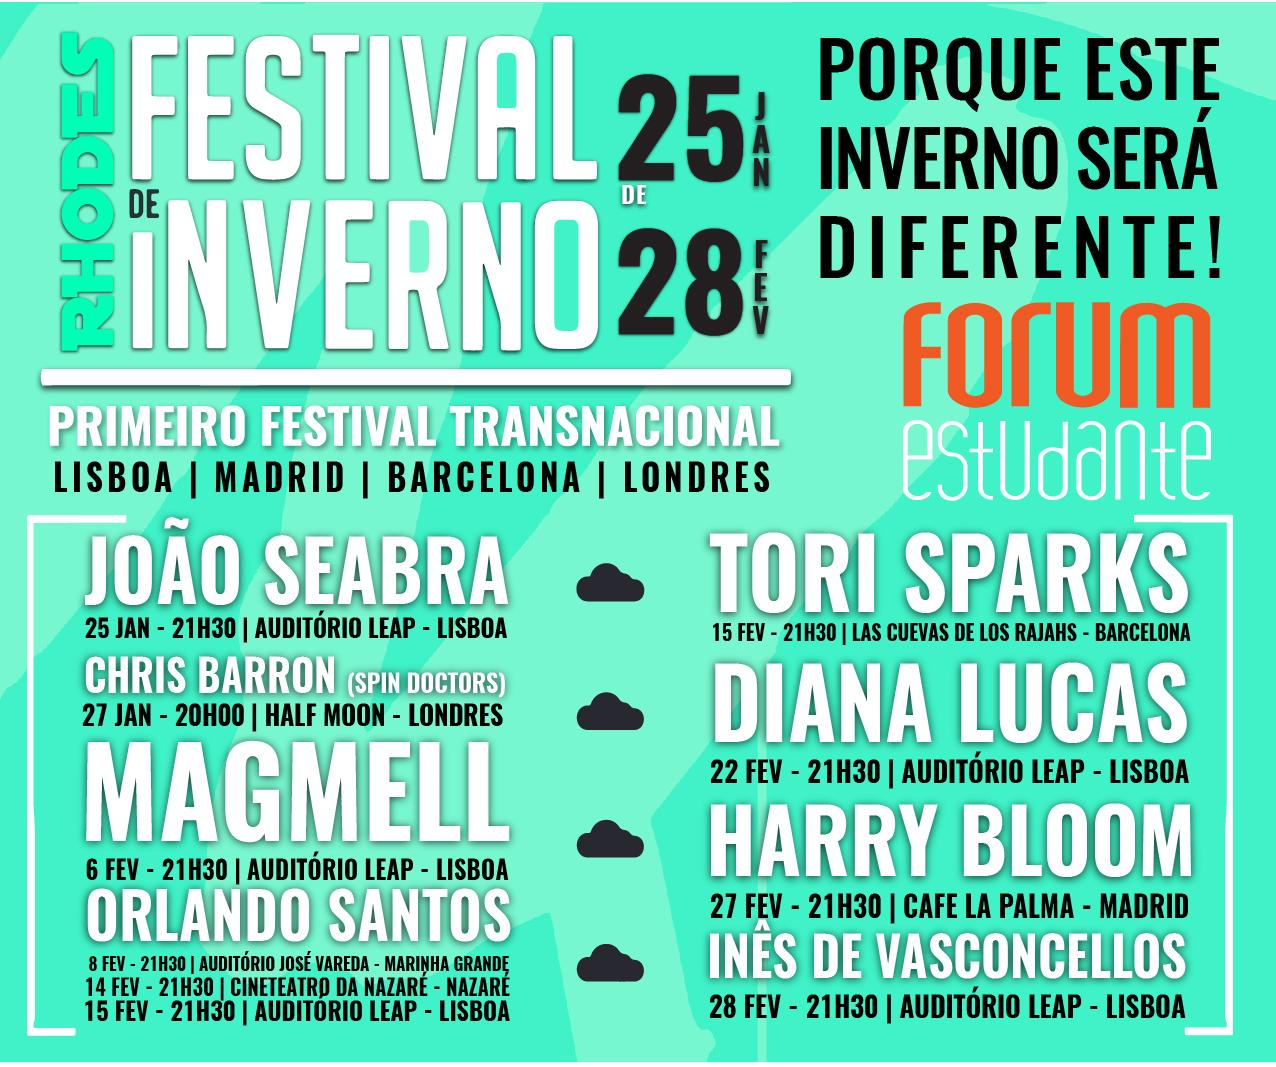 Rhodes Entertainment - Festival de Inverno